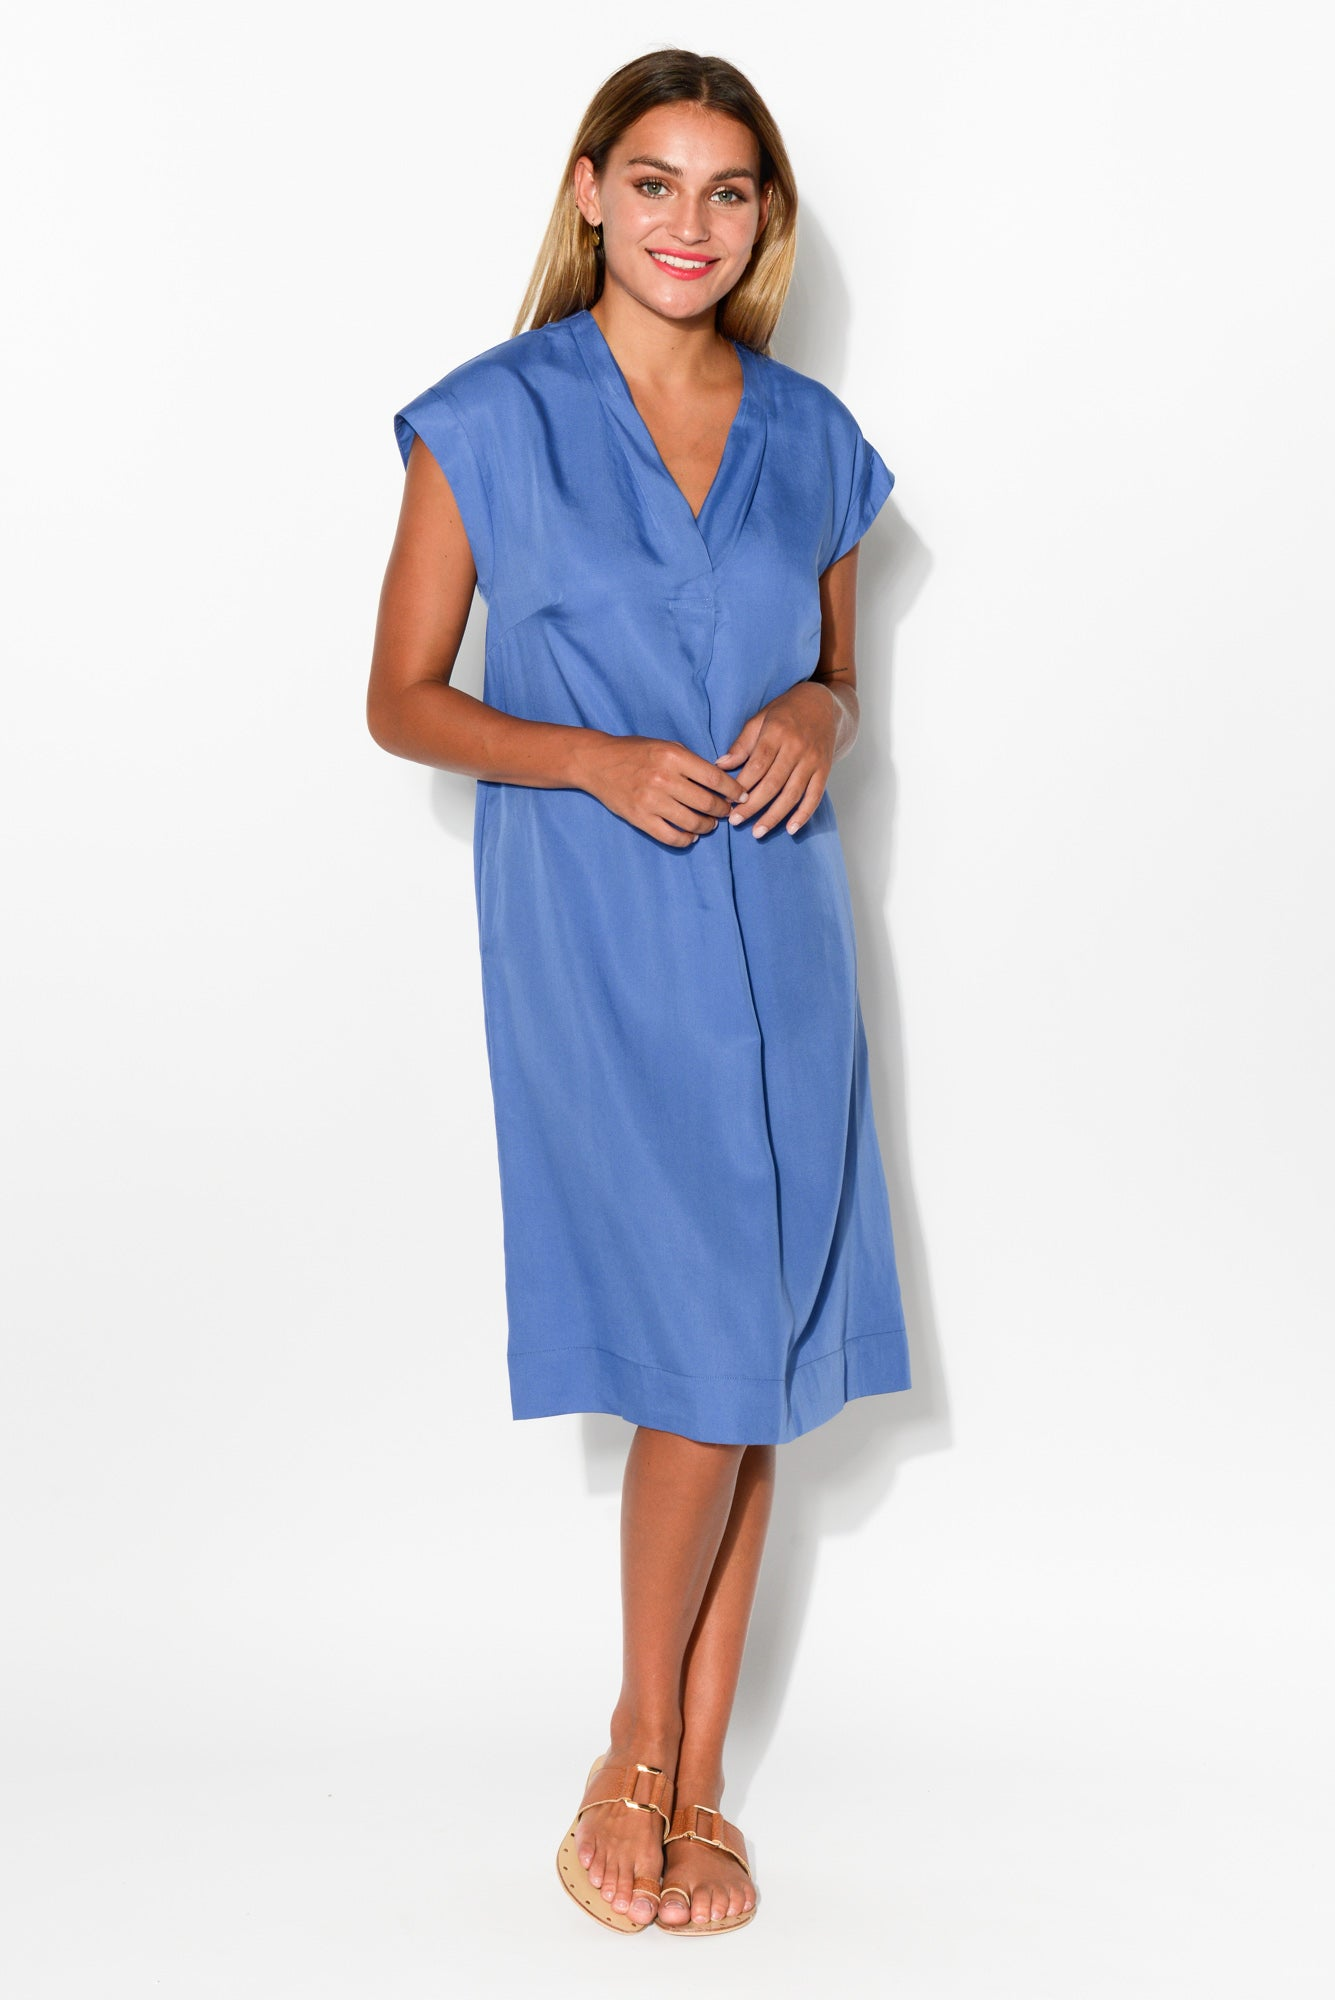 Carla Blue Pocket Dress - Blue Bungalow